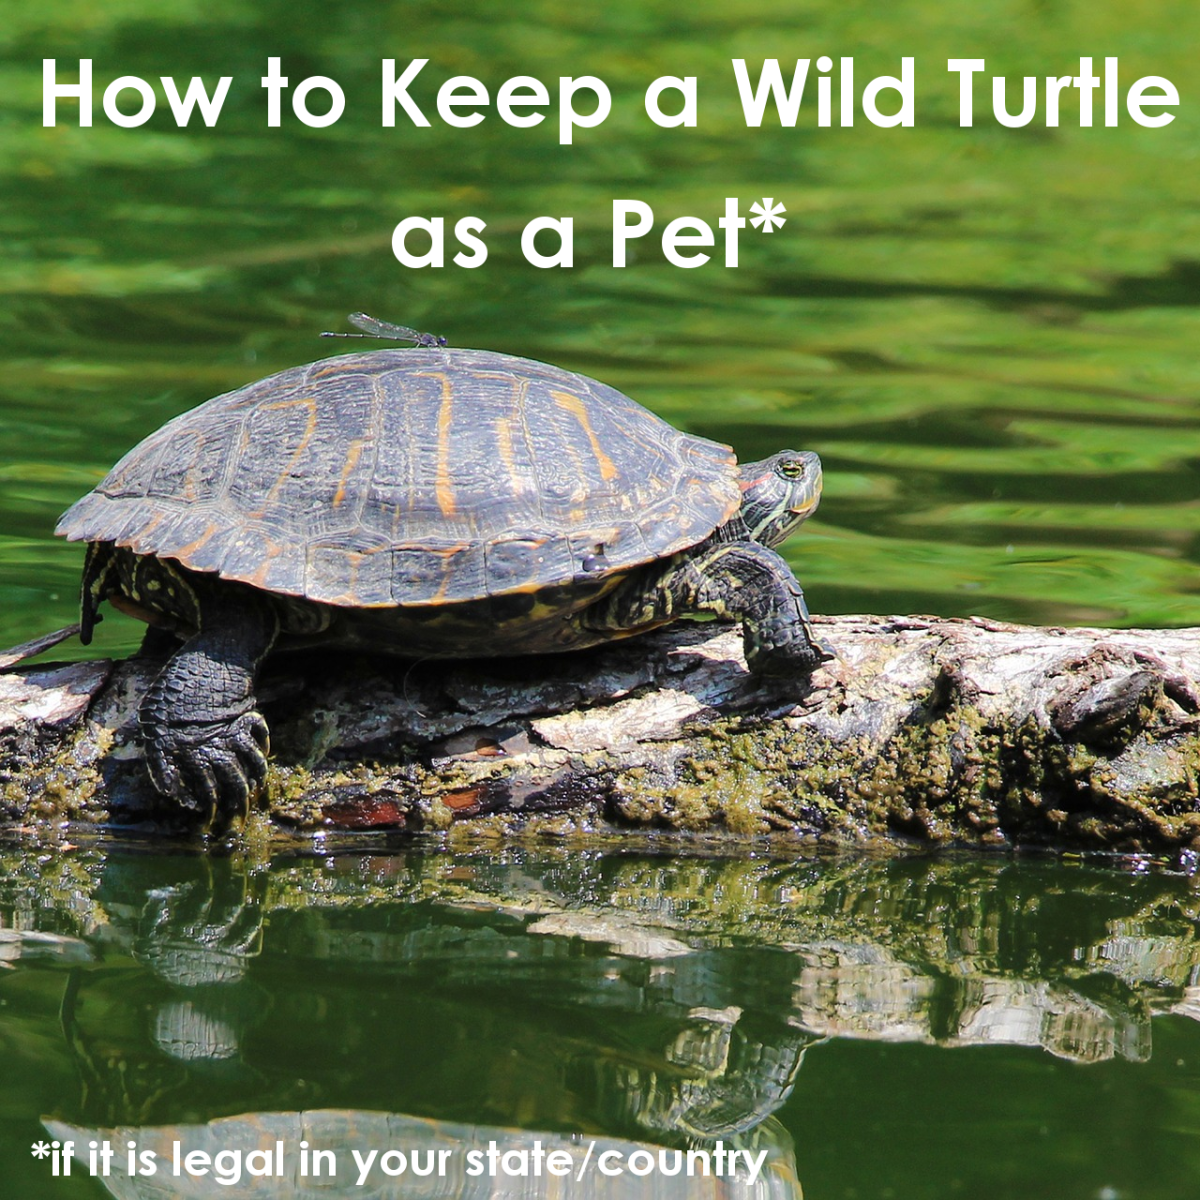 Discover how to provide the proper habitat, lighting and overall care for a wild turtle.